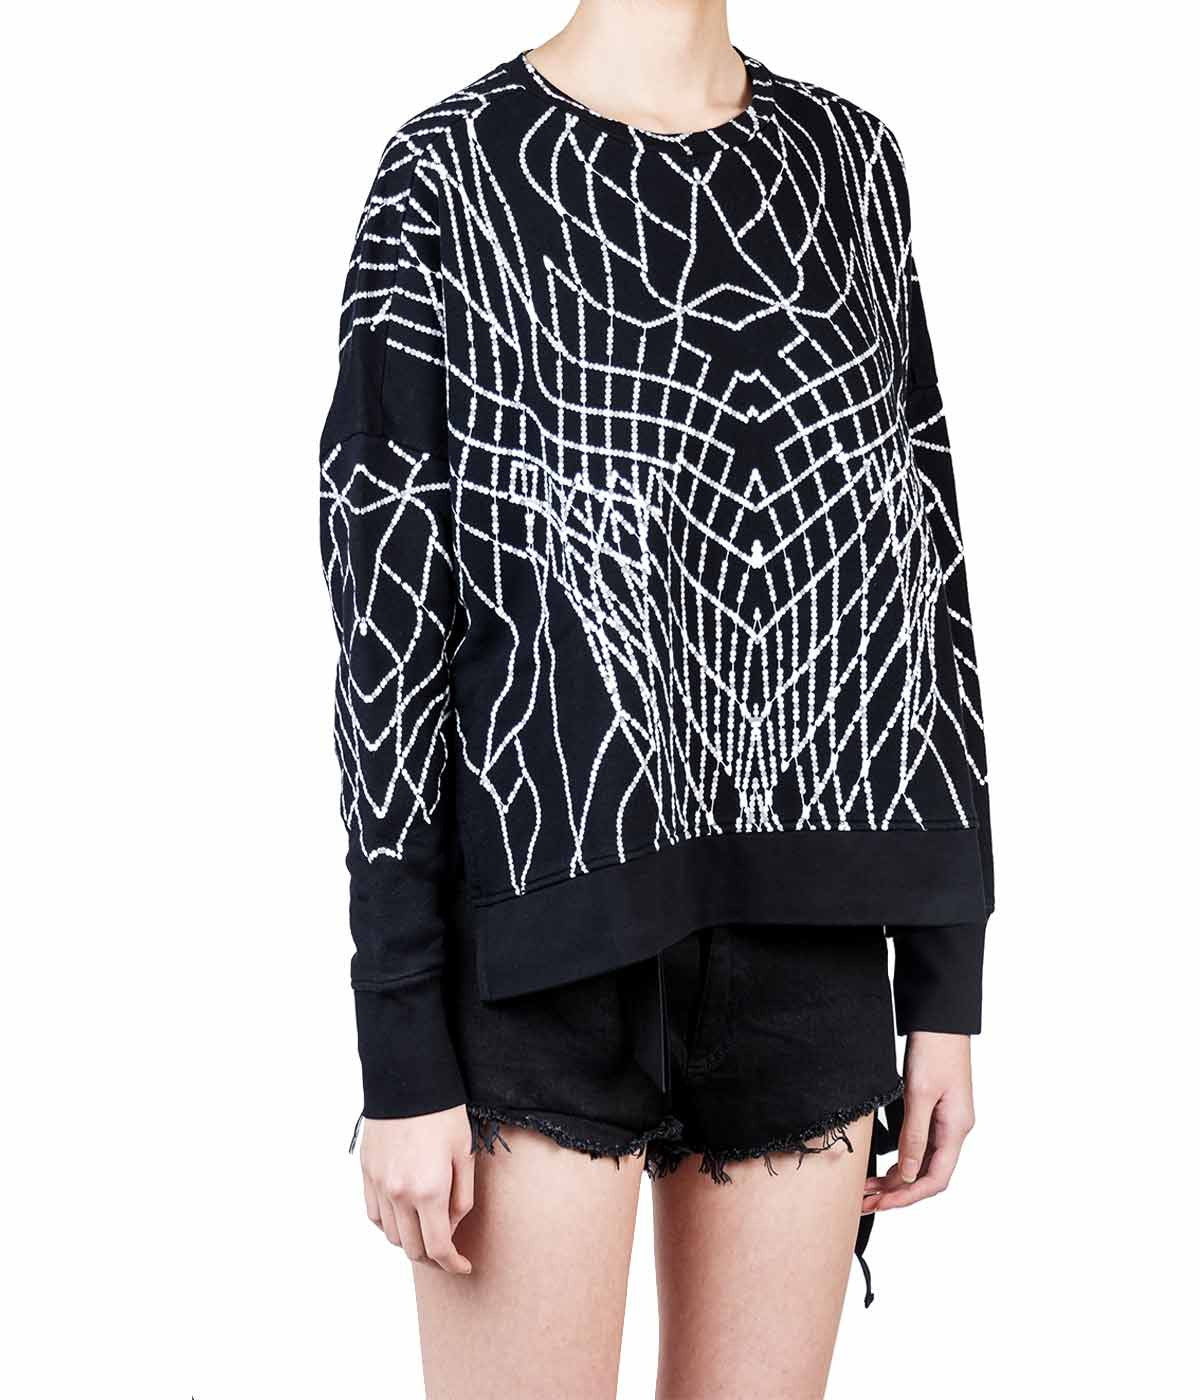 Printed Graphic Oversized Sweatshirt